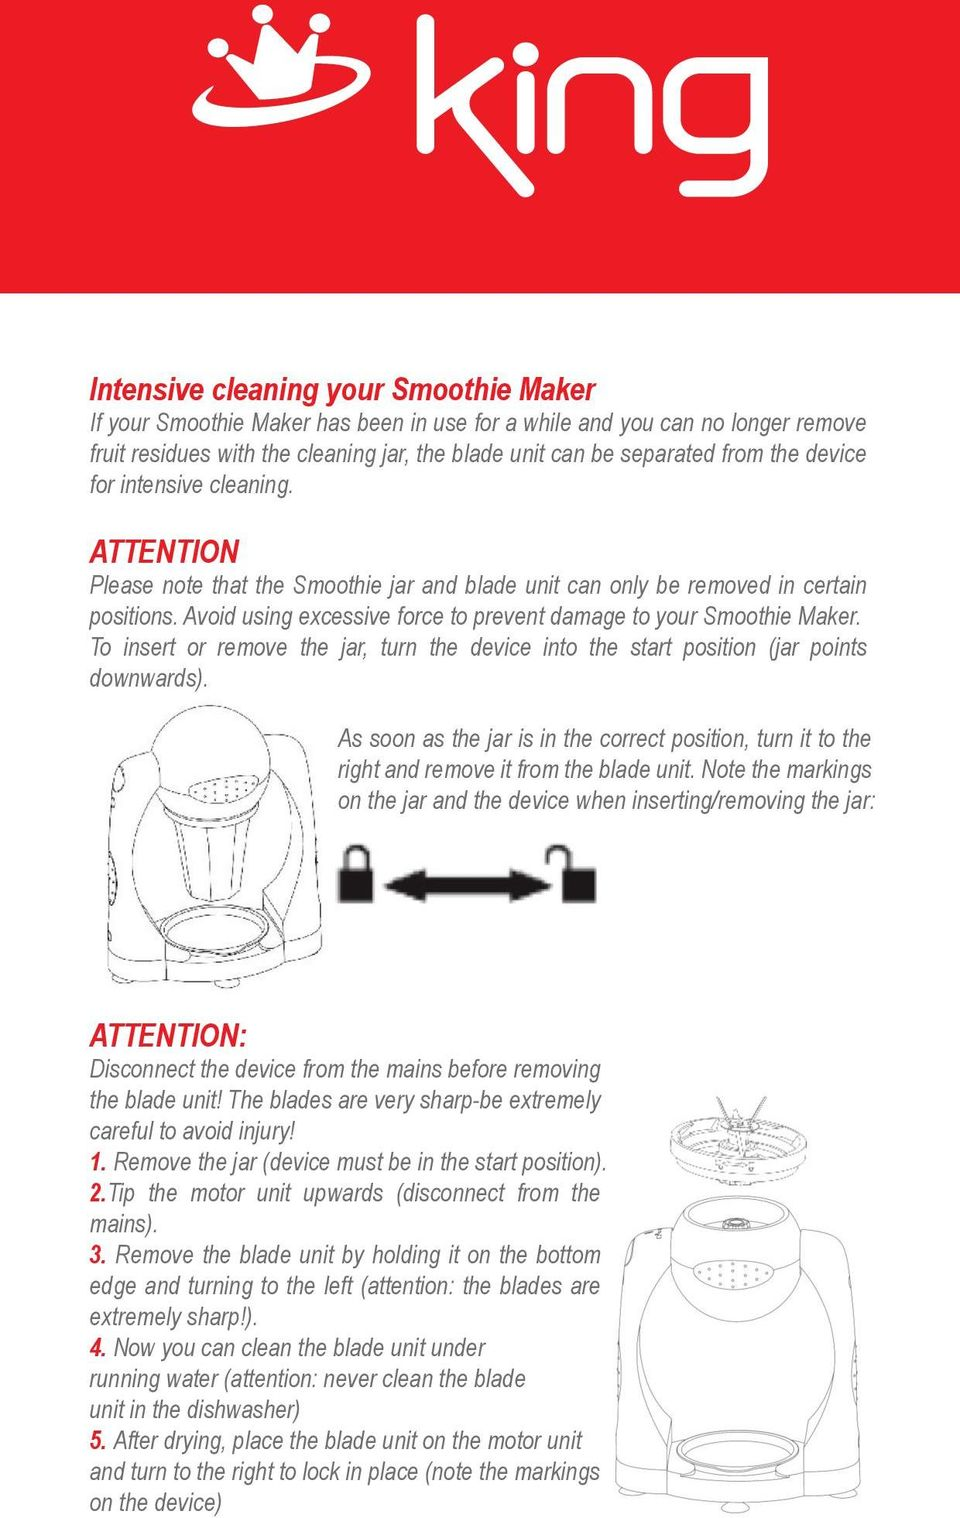 Avoid using excessive force to prevent damage to your Smoothie Maker. To insert or remove the jar, turn the device into the start position (jar points downwards).